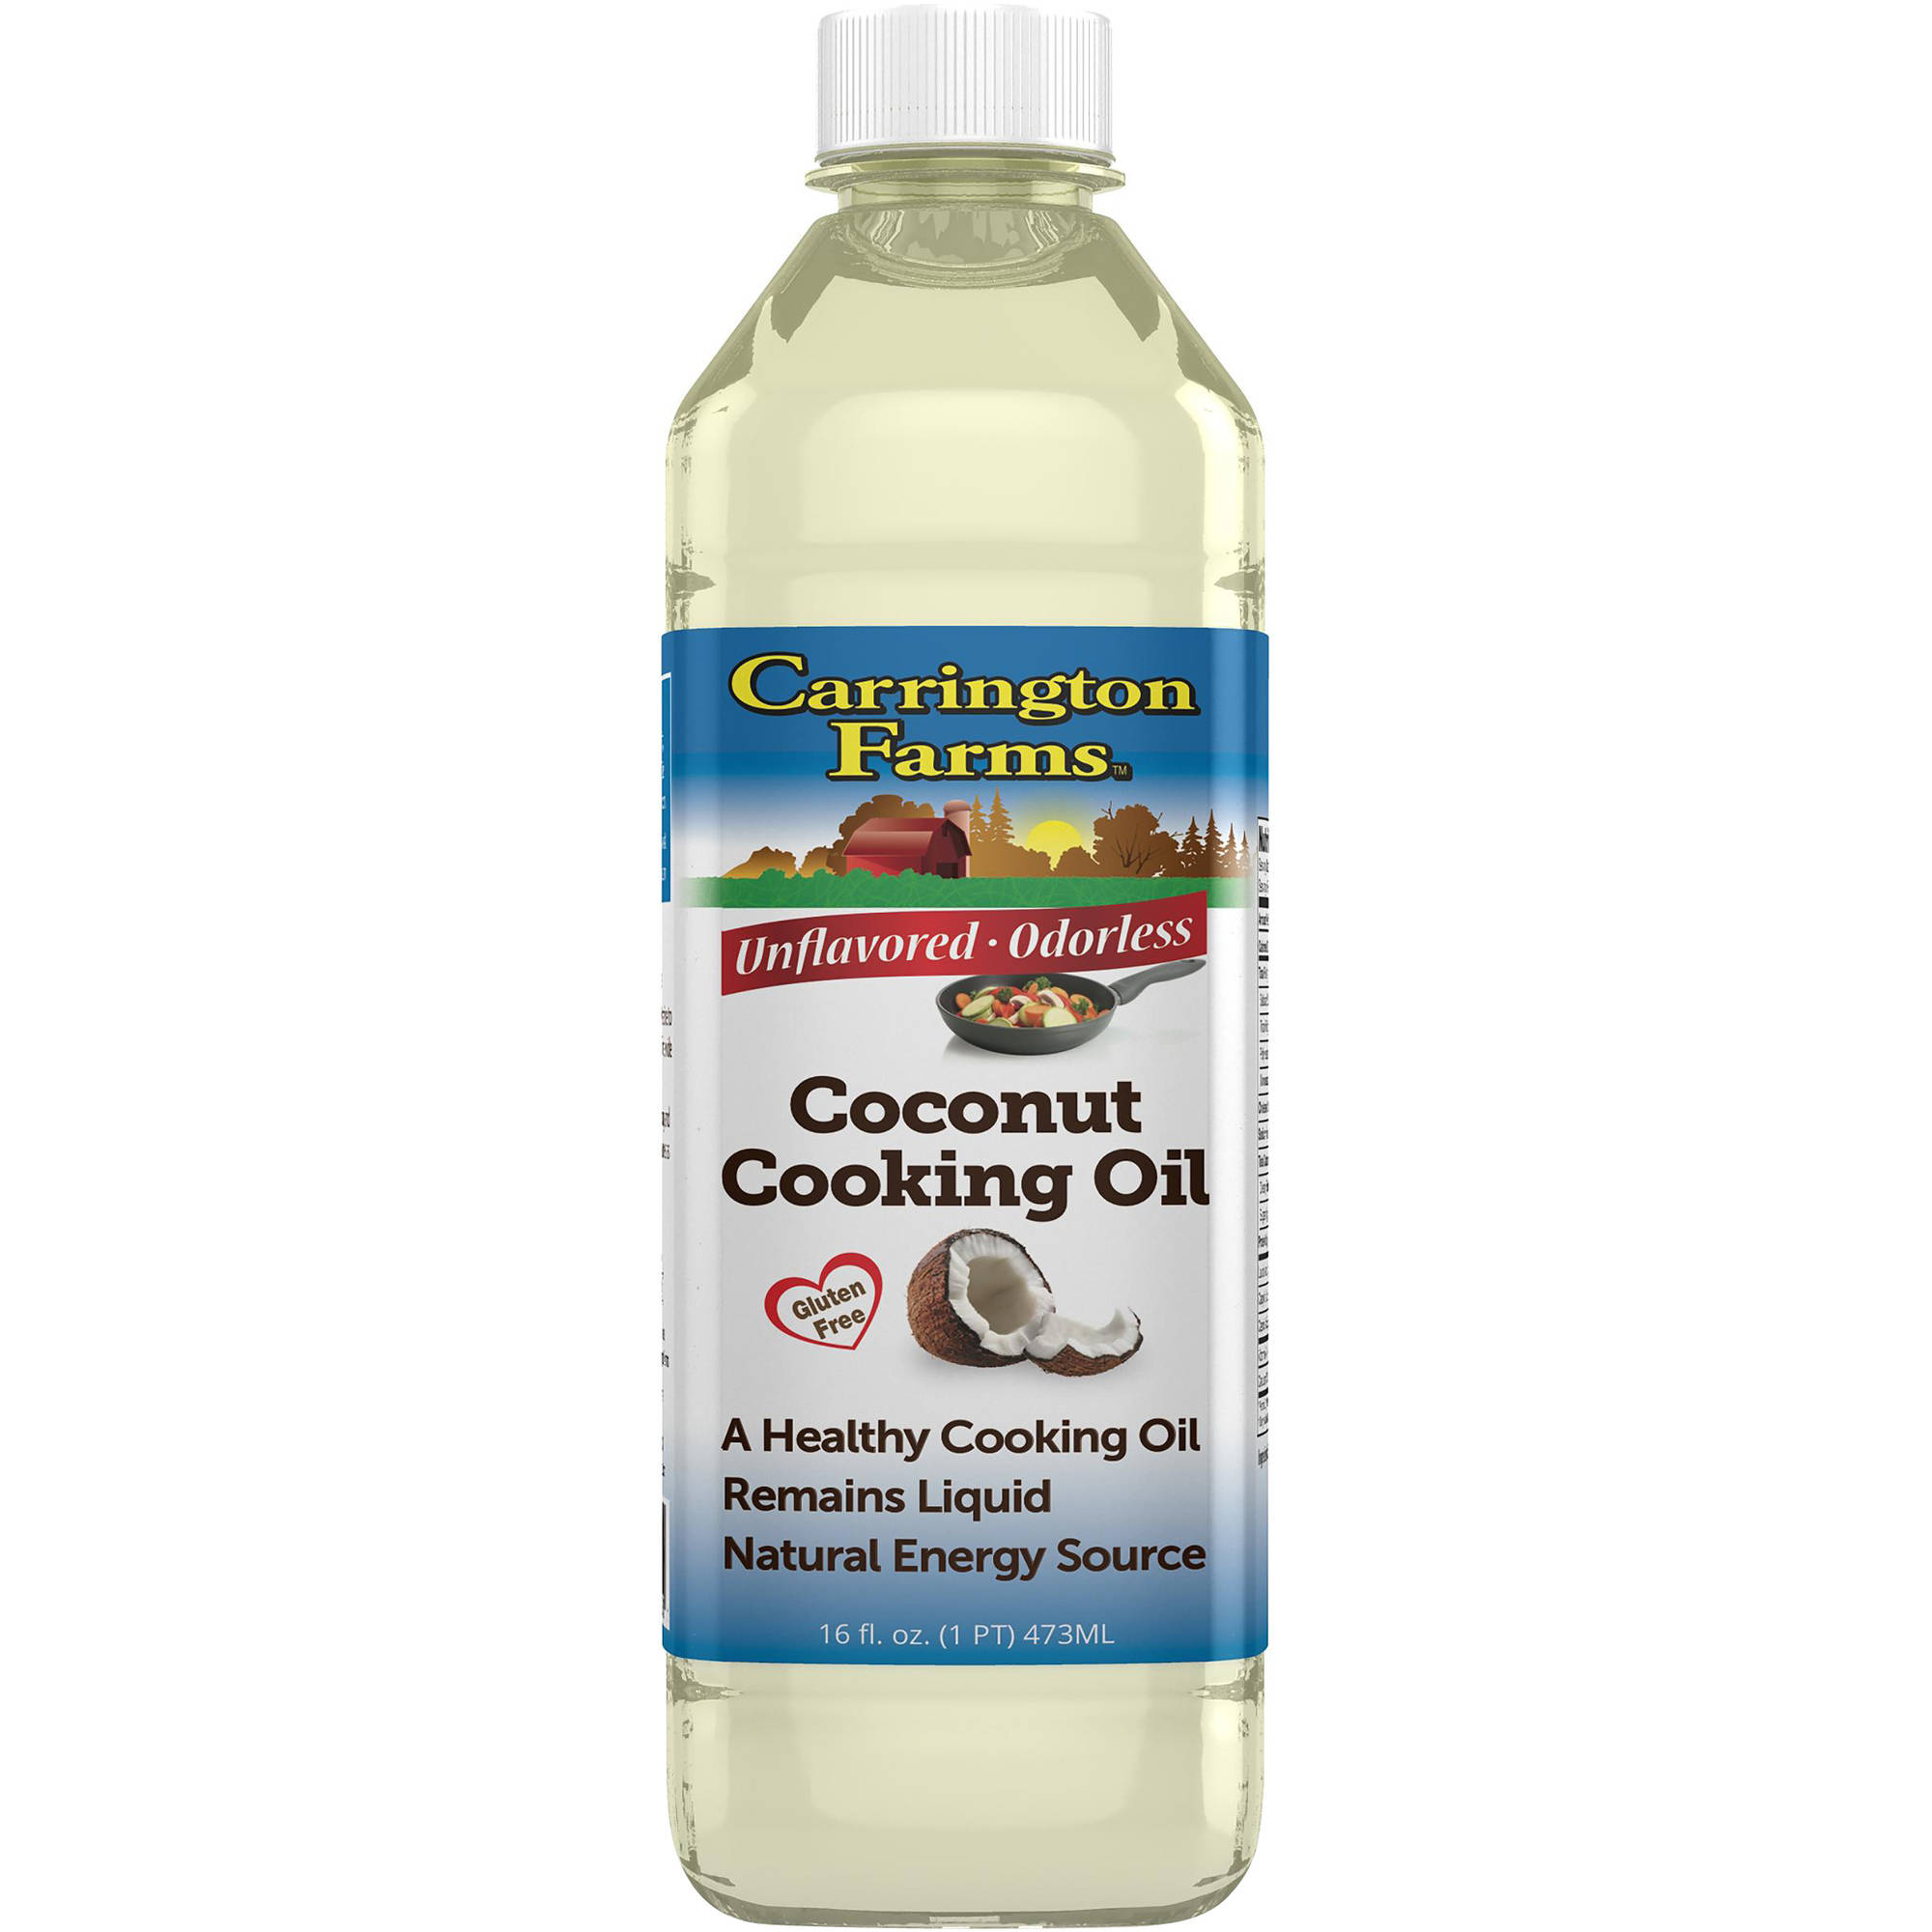 Carrington Farms Liquid Coconut Cooking Oil, 16 fl oz